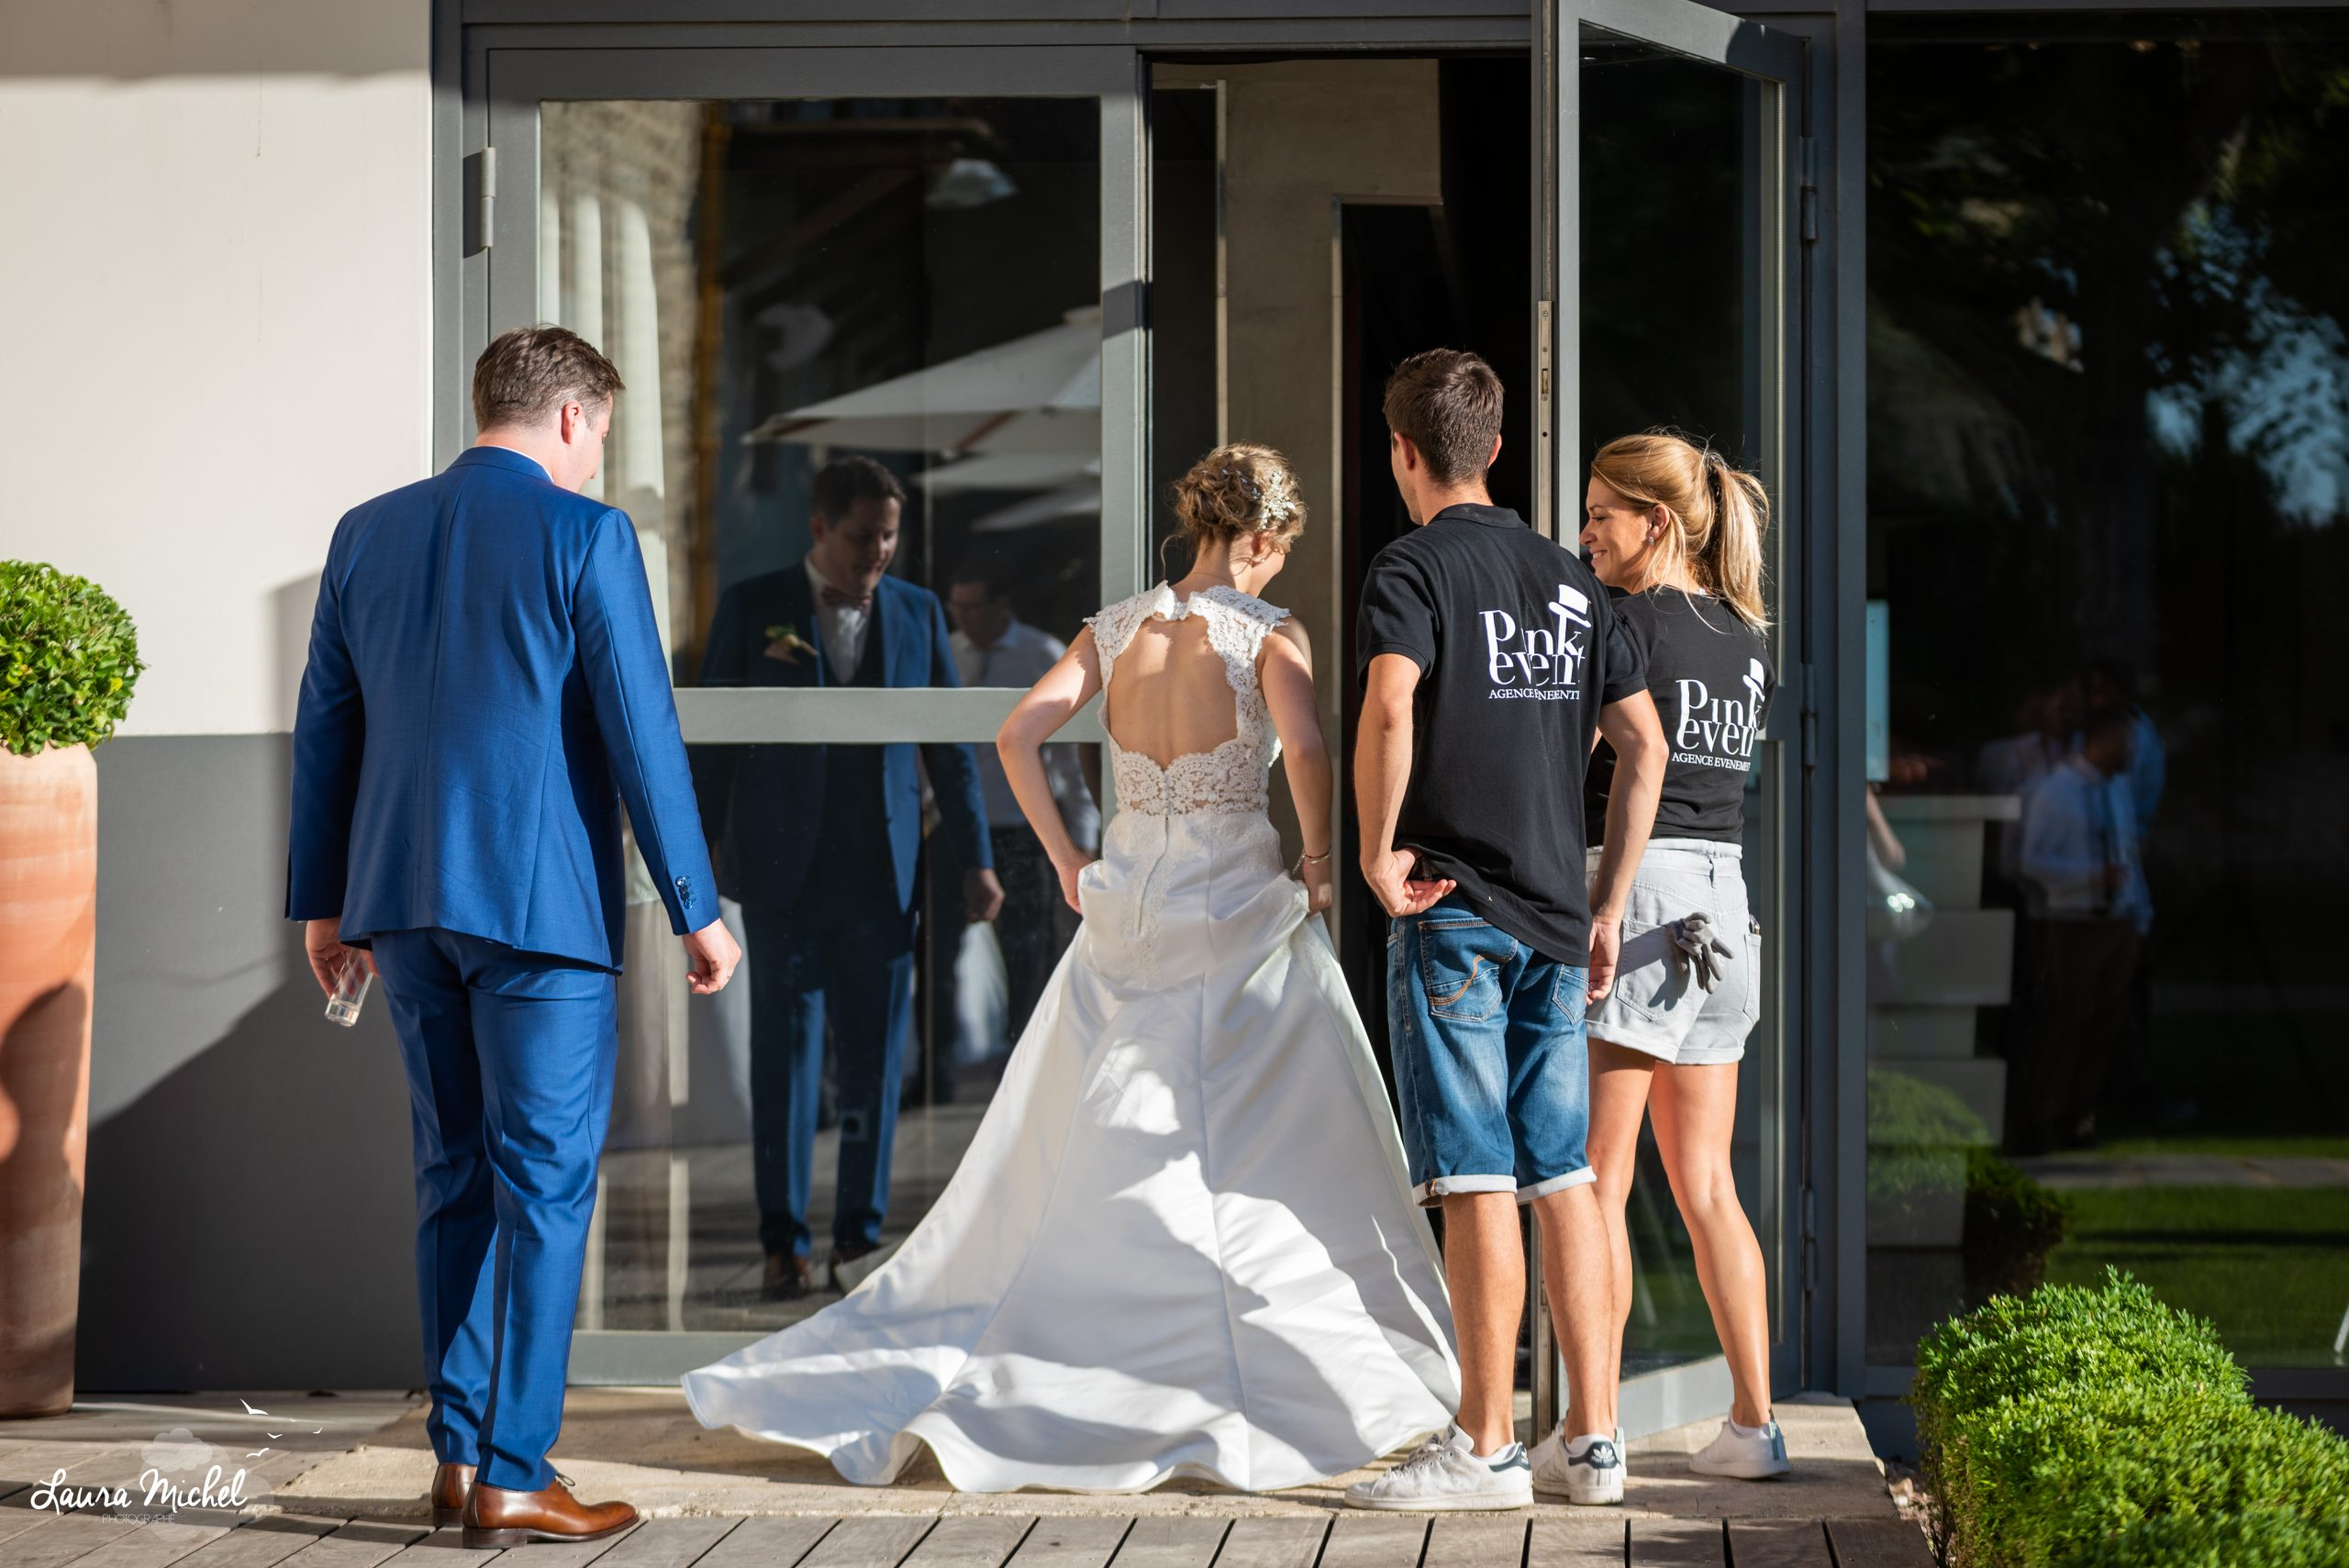 Agence Pink Event Montpellier Laura Michel Photographe Mariage 044